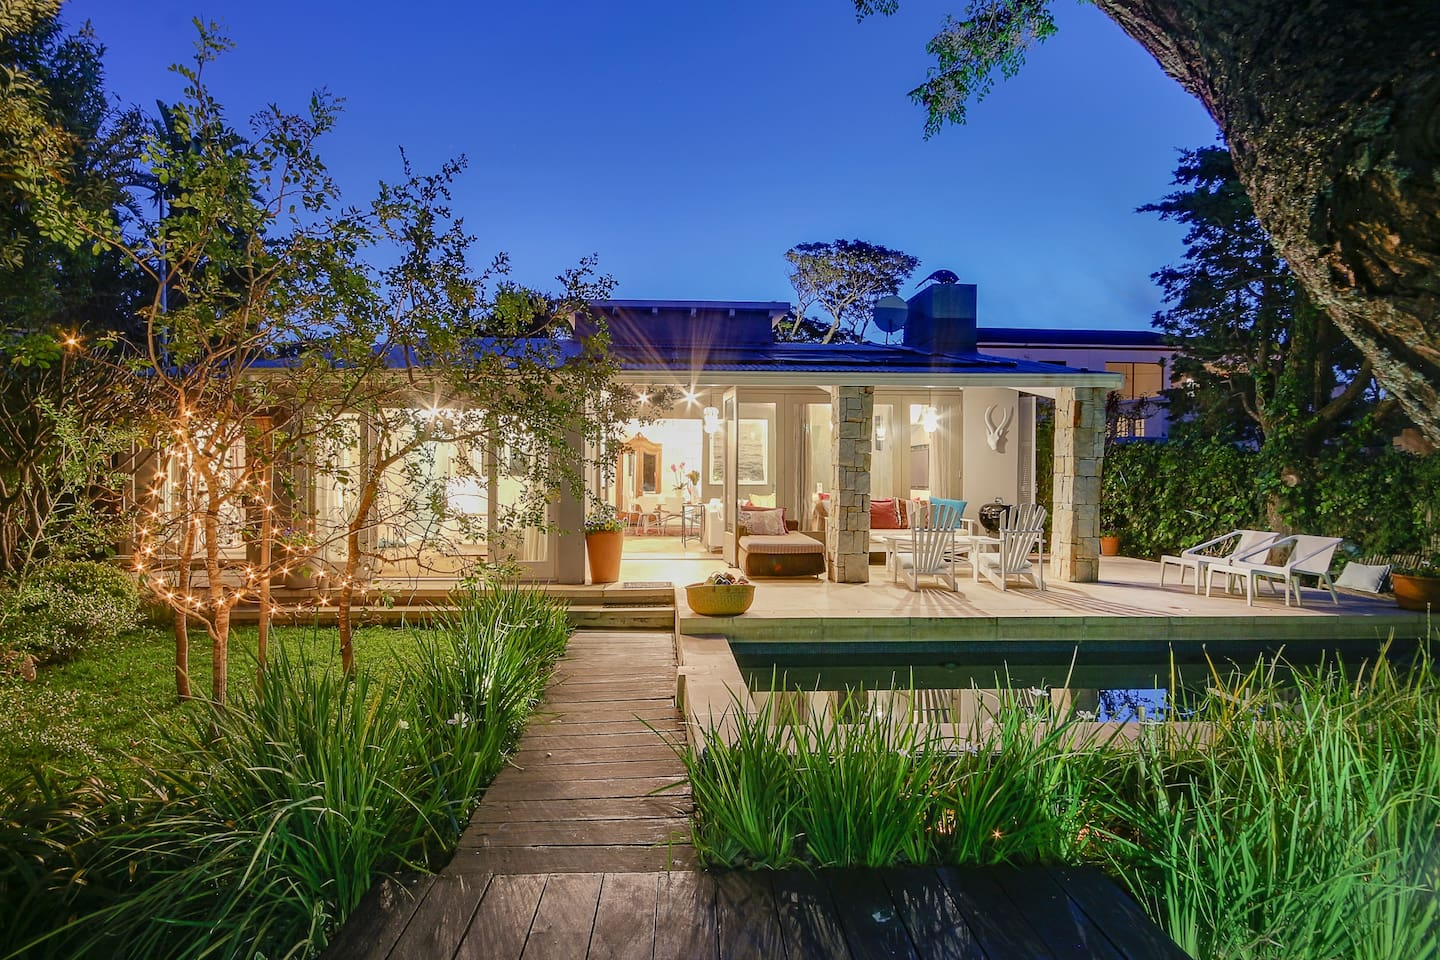 Welcome home to serene Shell Cottage, set in the most beautiful garden a block from the beach